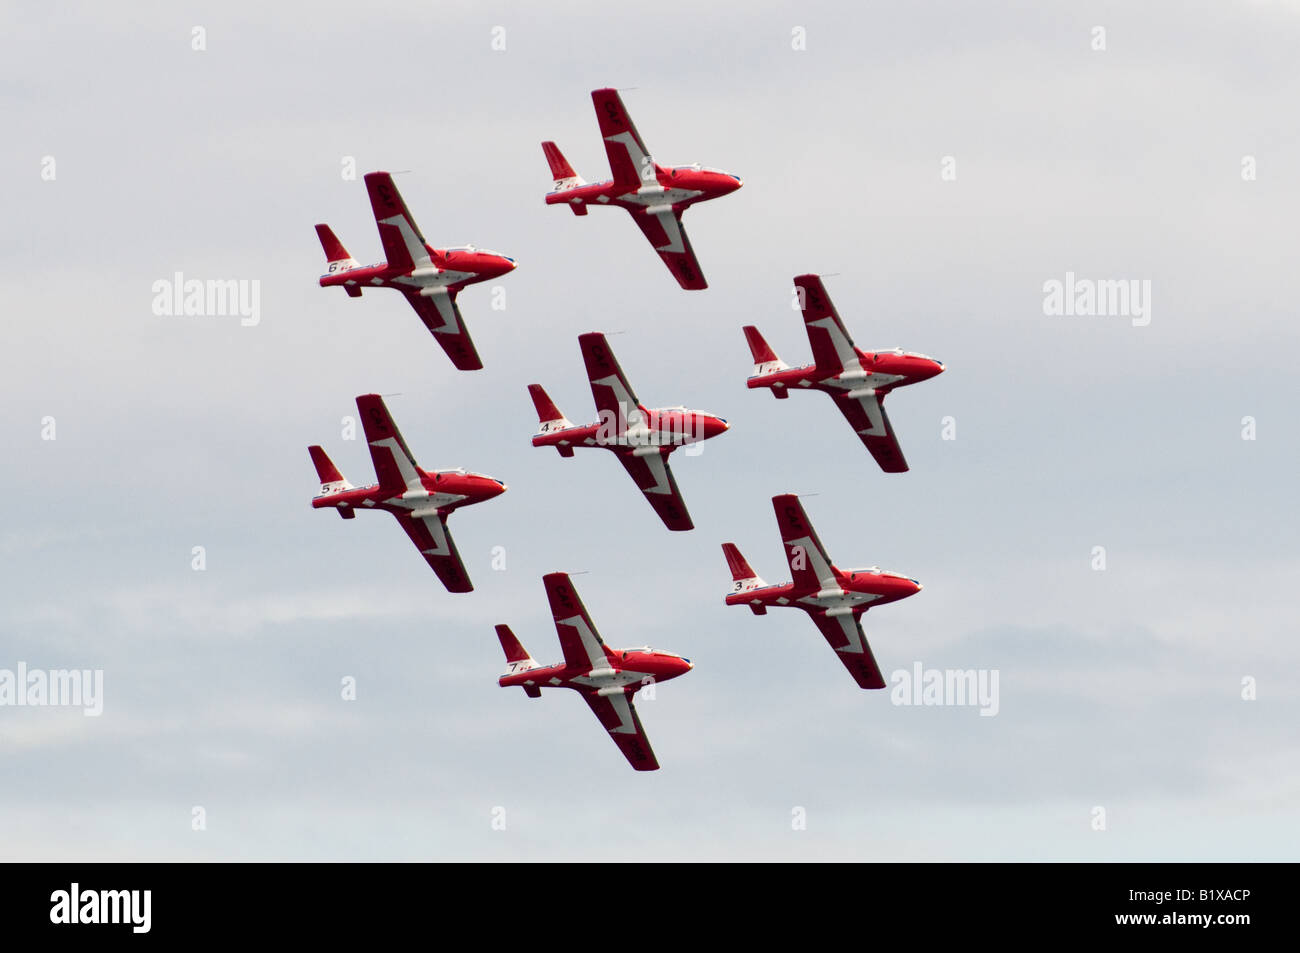 The Snowbirds, Canada's extreme aerobatic team, perform precise maneuvers together in the sky. Stock Photo